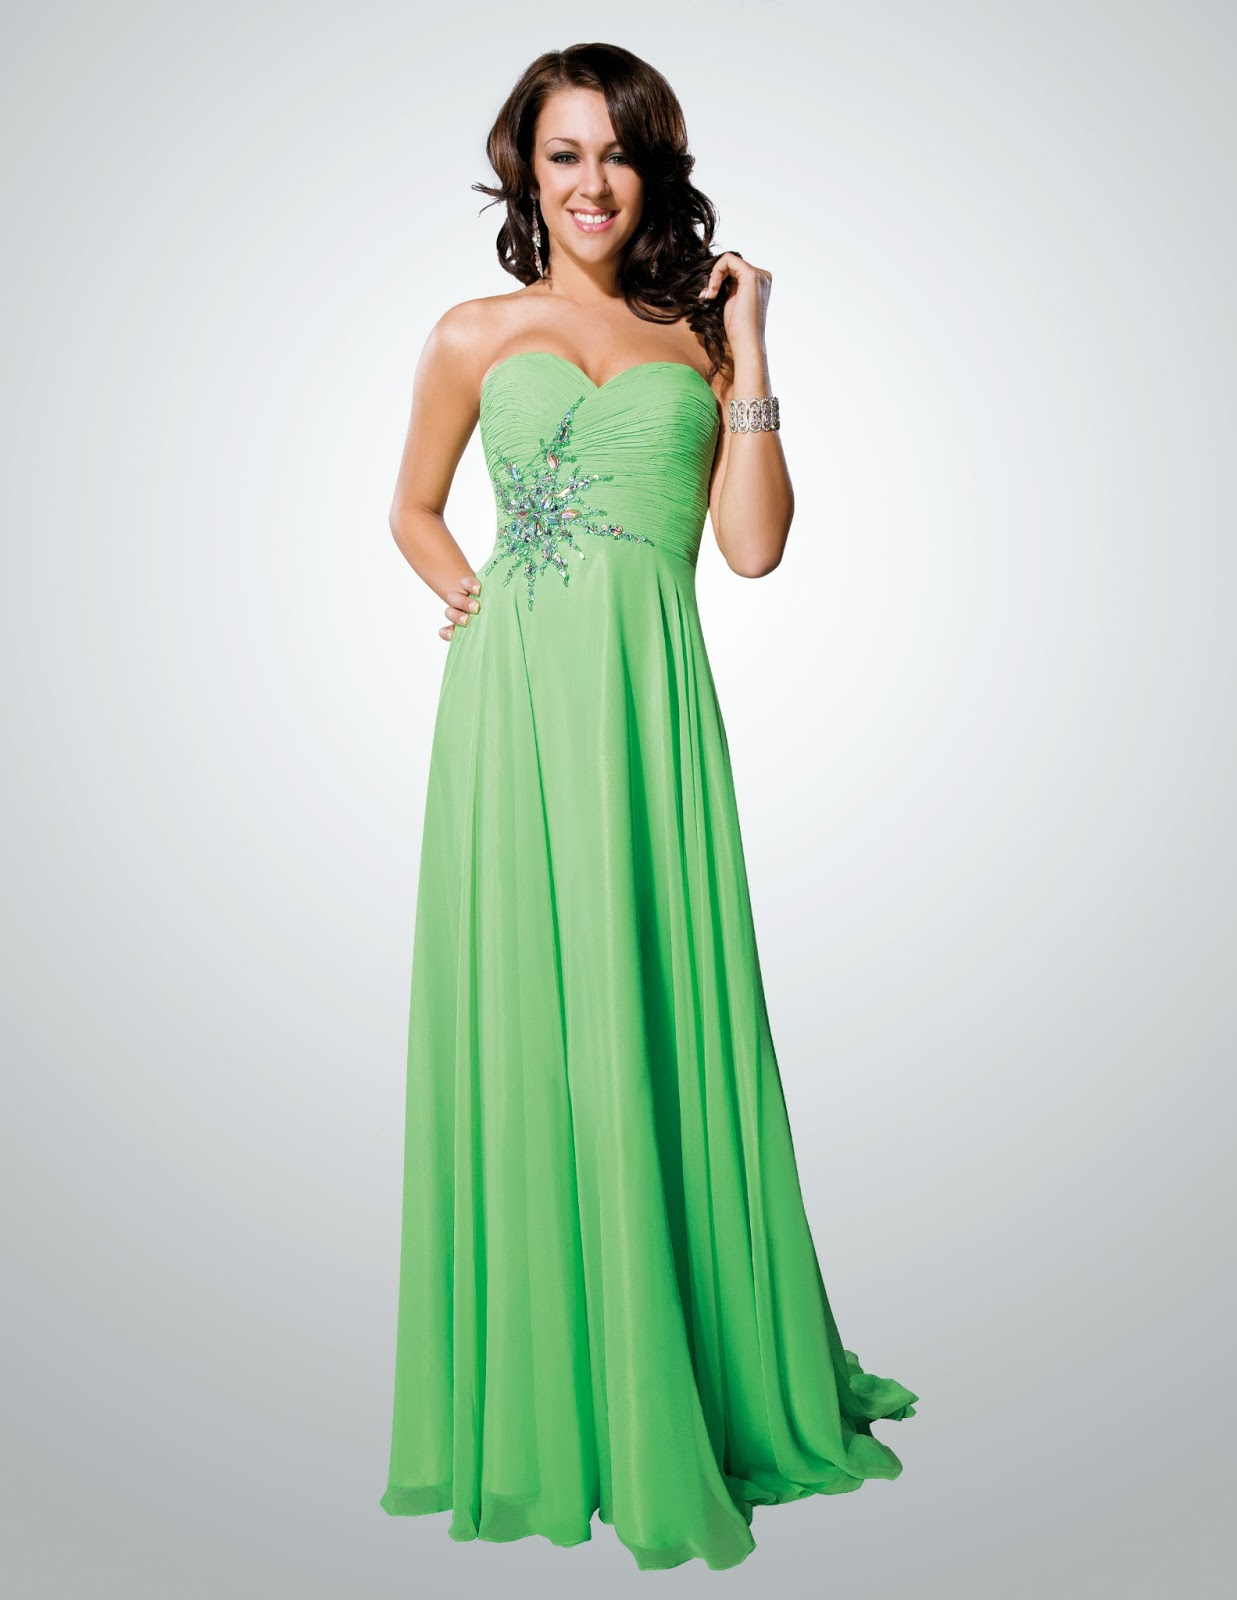 Emerald Green Prom Dress 2013